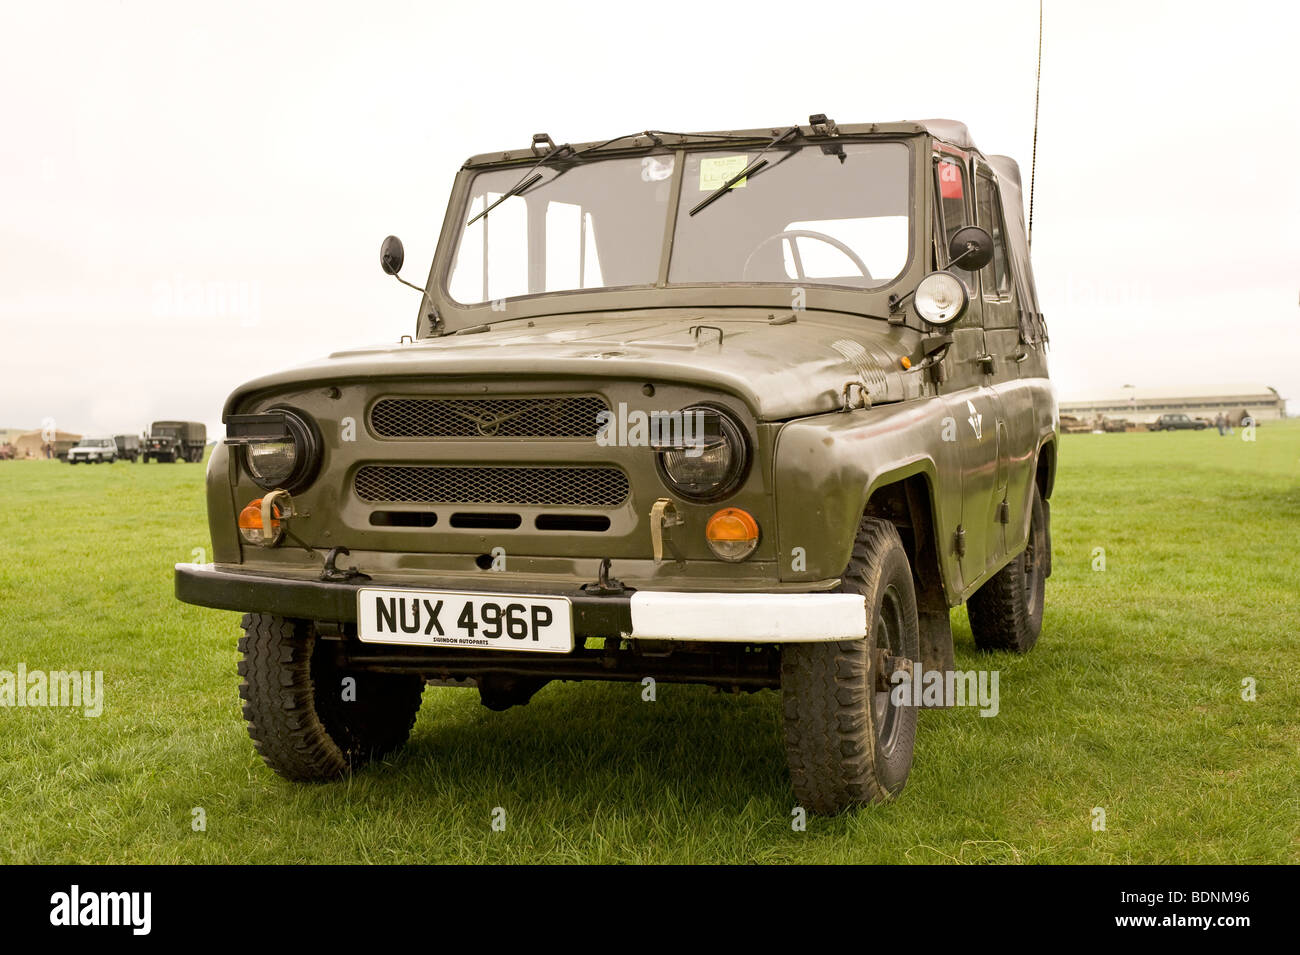 A Russian UAZ 469 4WD vehicle used by Soviet forces - Stock Image